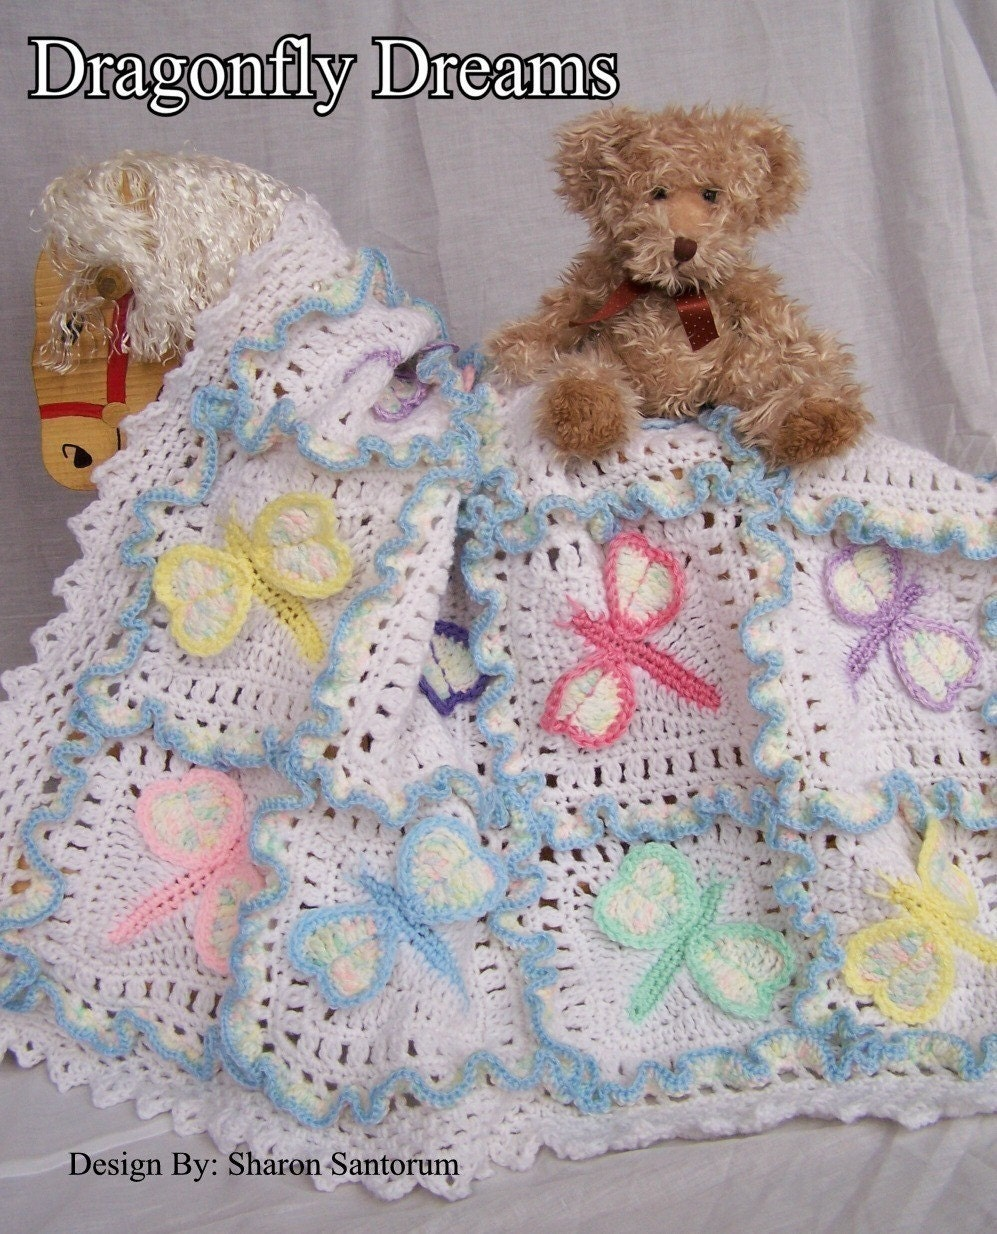 Dragonfly Dreams Crochet Baby Afghan or Blanket Pattern PDF